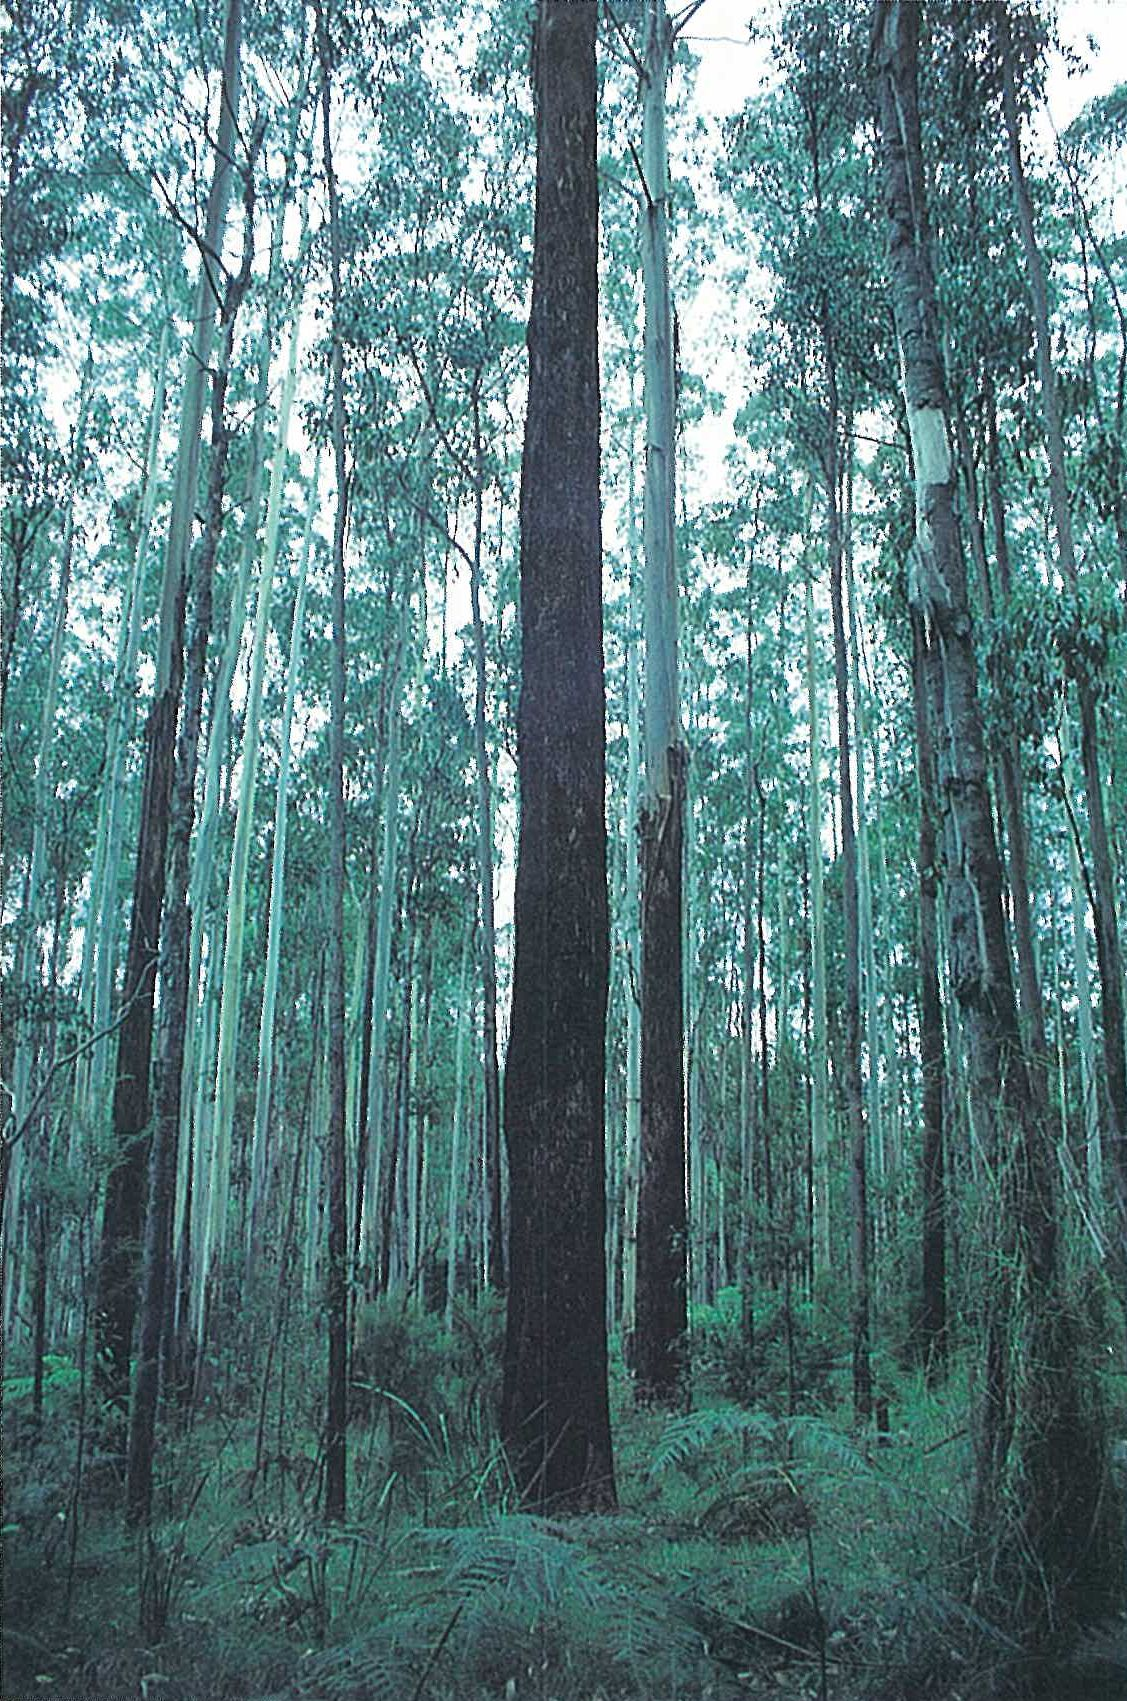 Eastern Highlands; wet sclerophyll forest. Eucalyptus regnans tall open-forest, with E. viminalis open-forest behind. Ground-layer of Lepidosperma elatius, Pteridium esculentum and Tetrarrhena juncea. Ada River area, near Noojee.